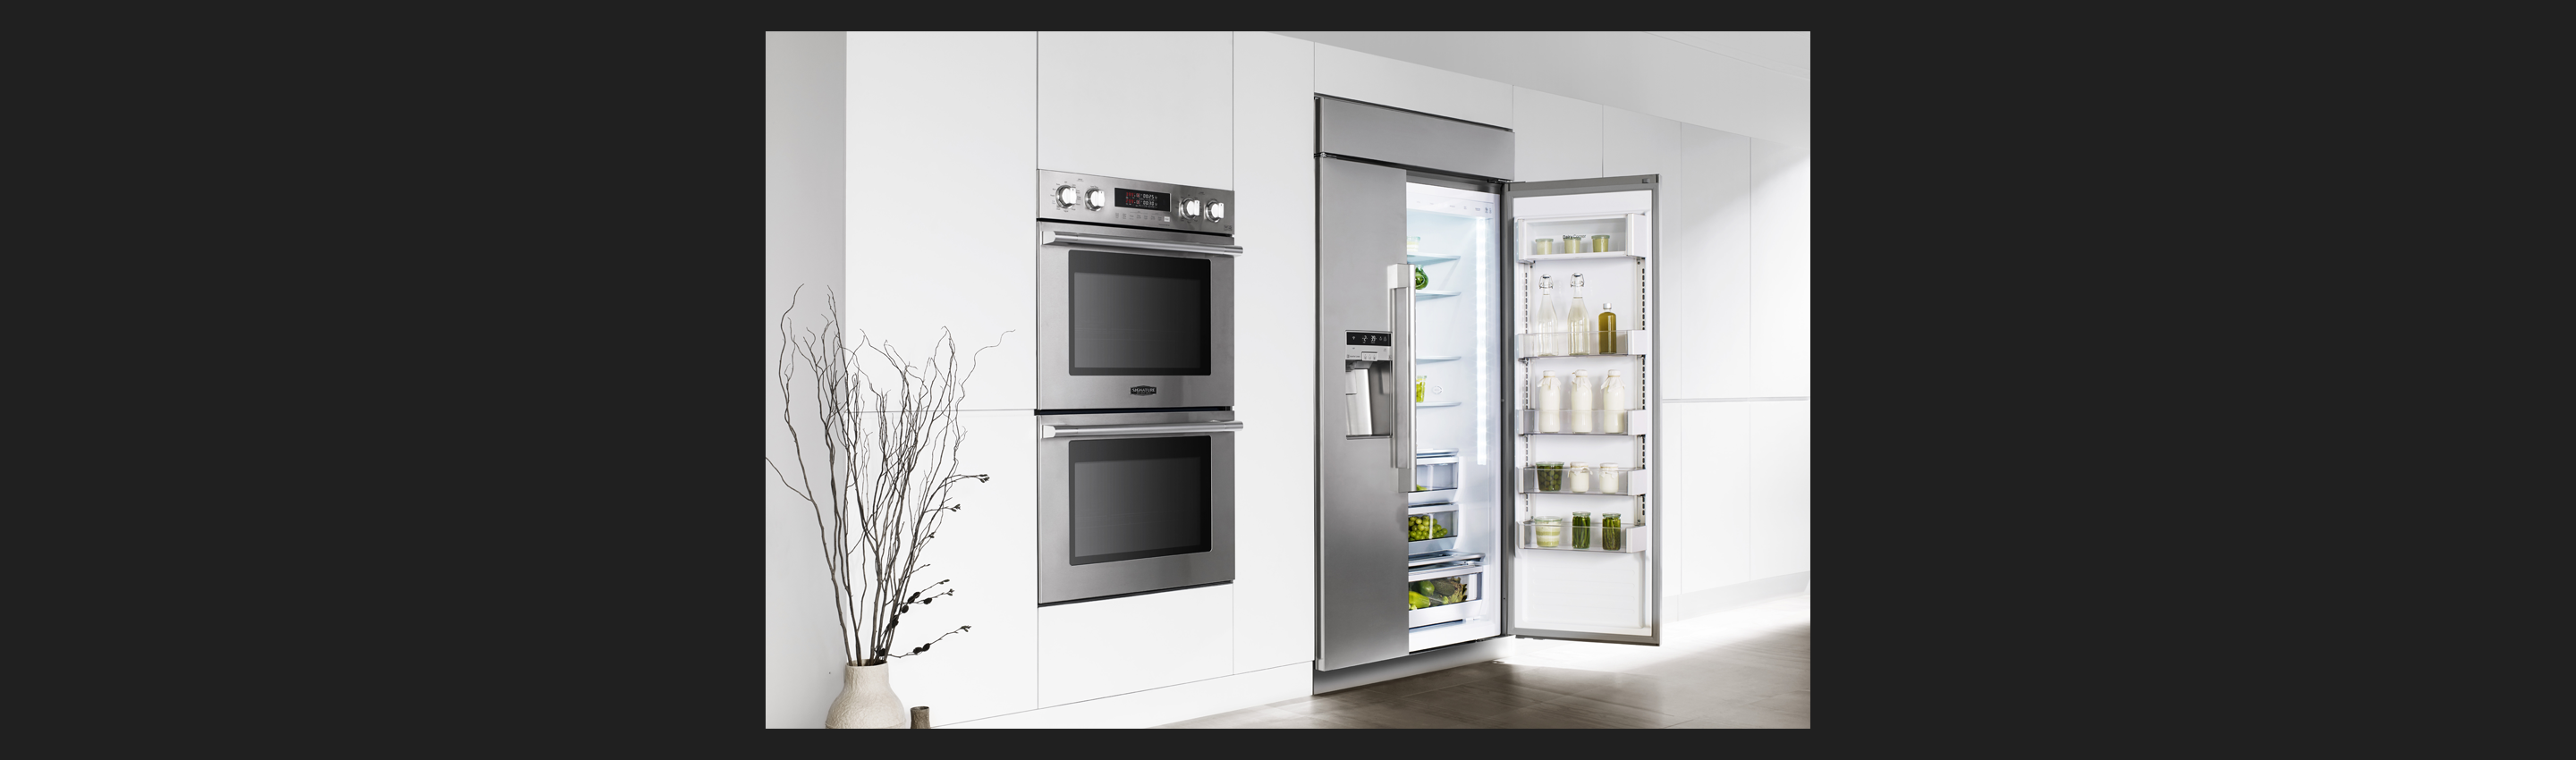 "42"" Built-in Side-by-side Refrigerator 